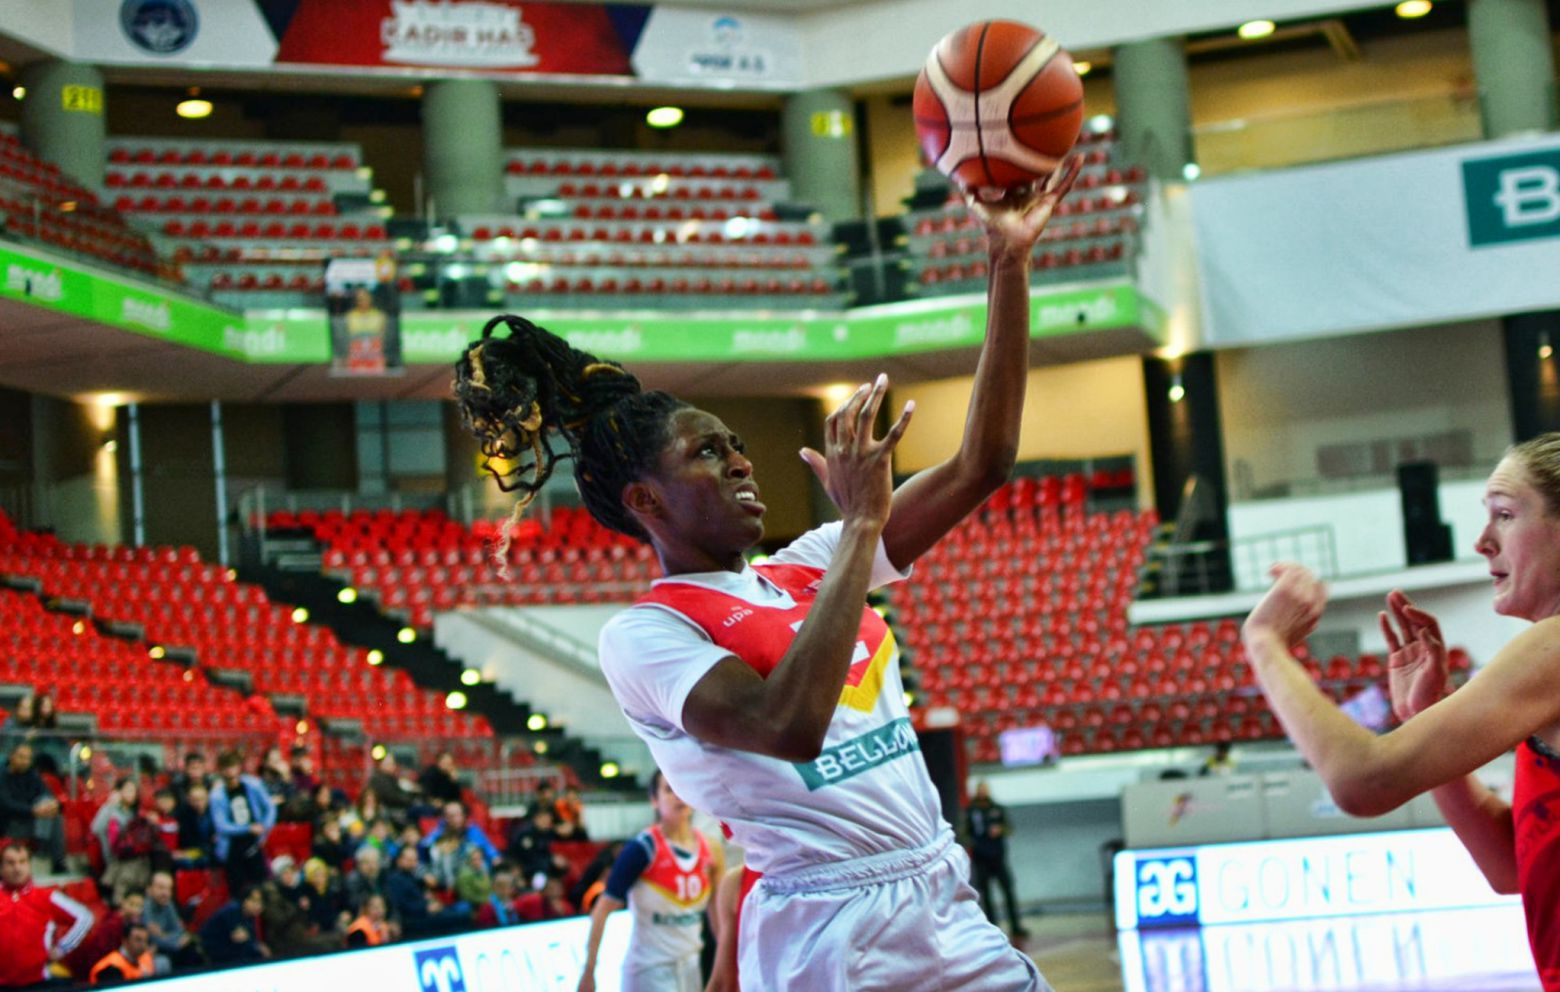 IFY IBEKWE has signed in Italy with Ragusa